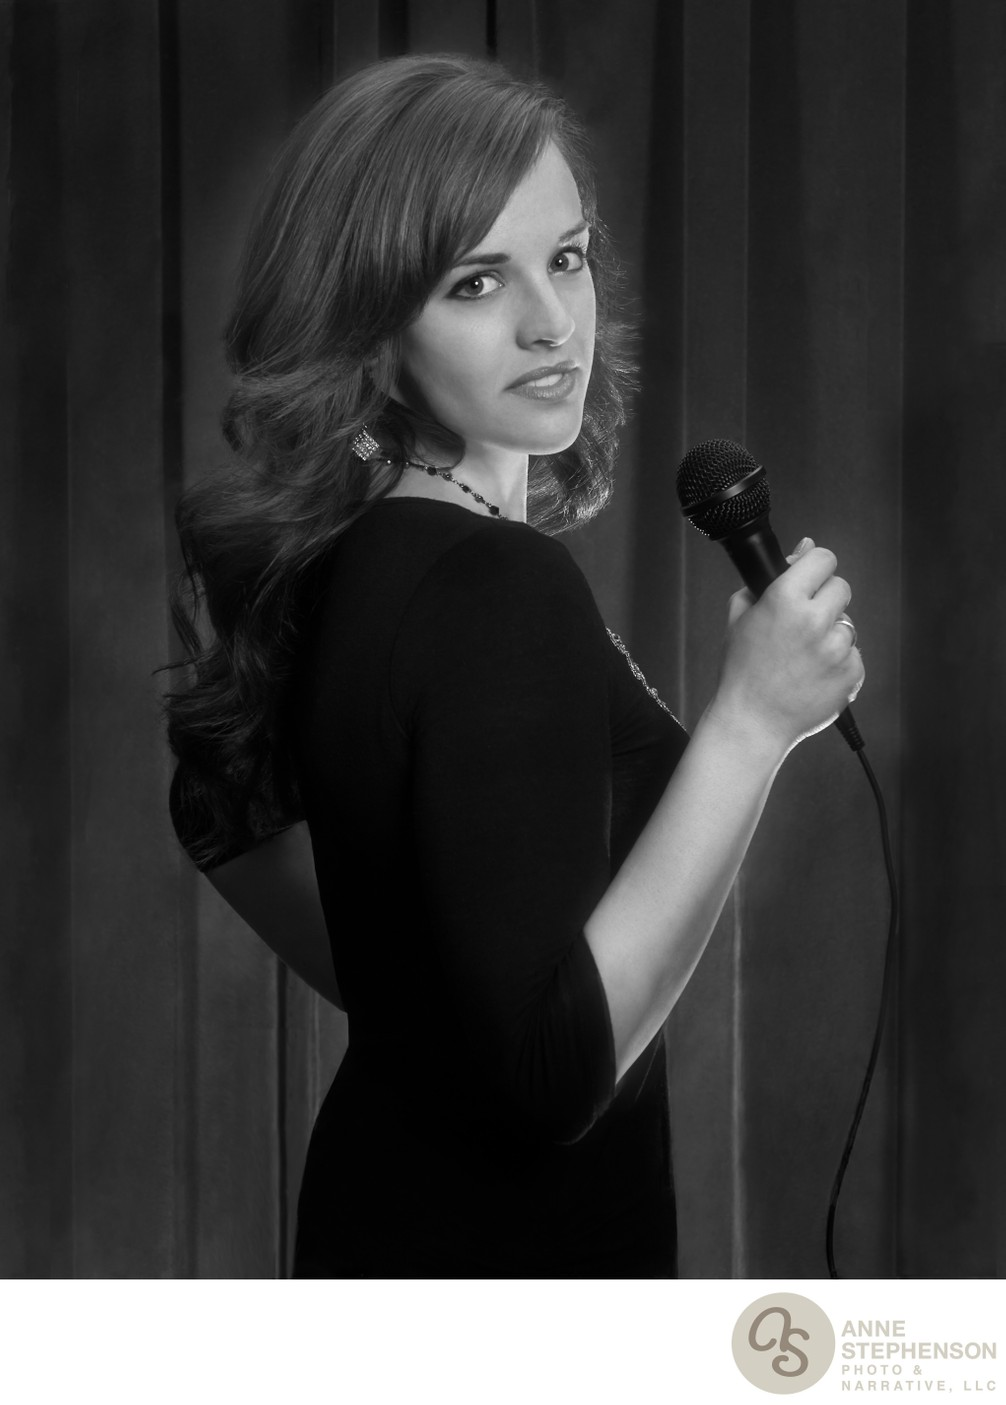 Portrait of a Singer with Microphone